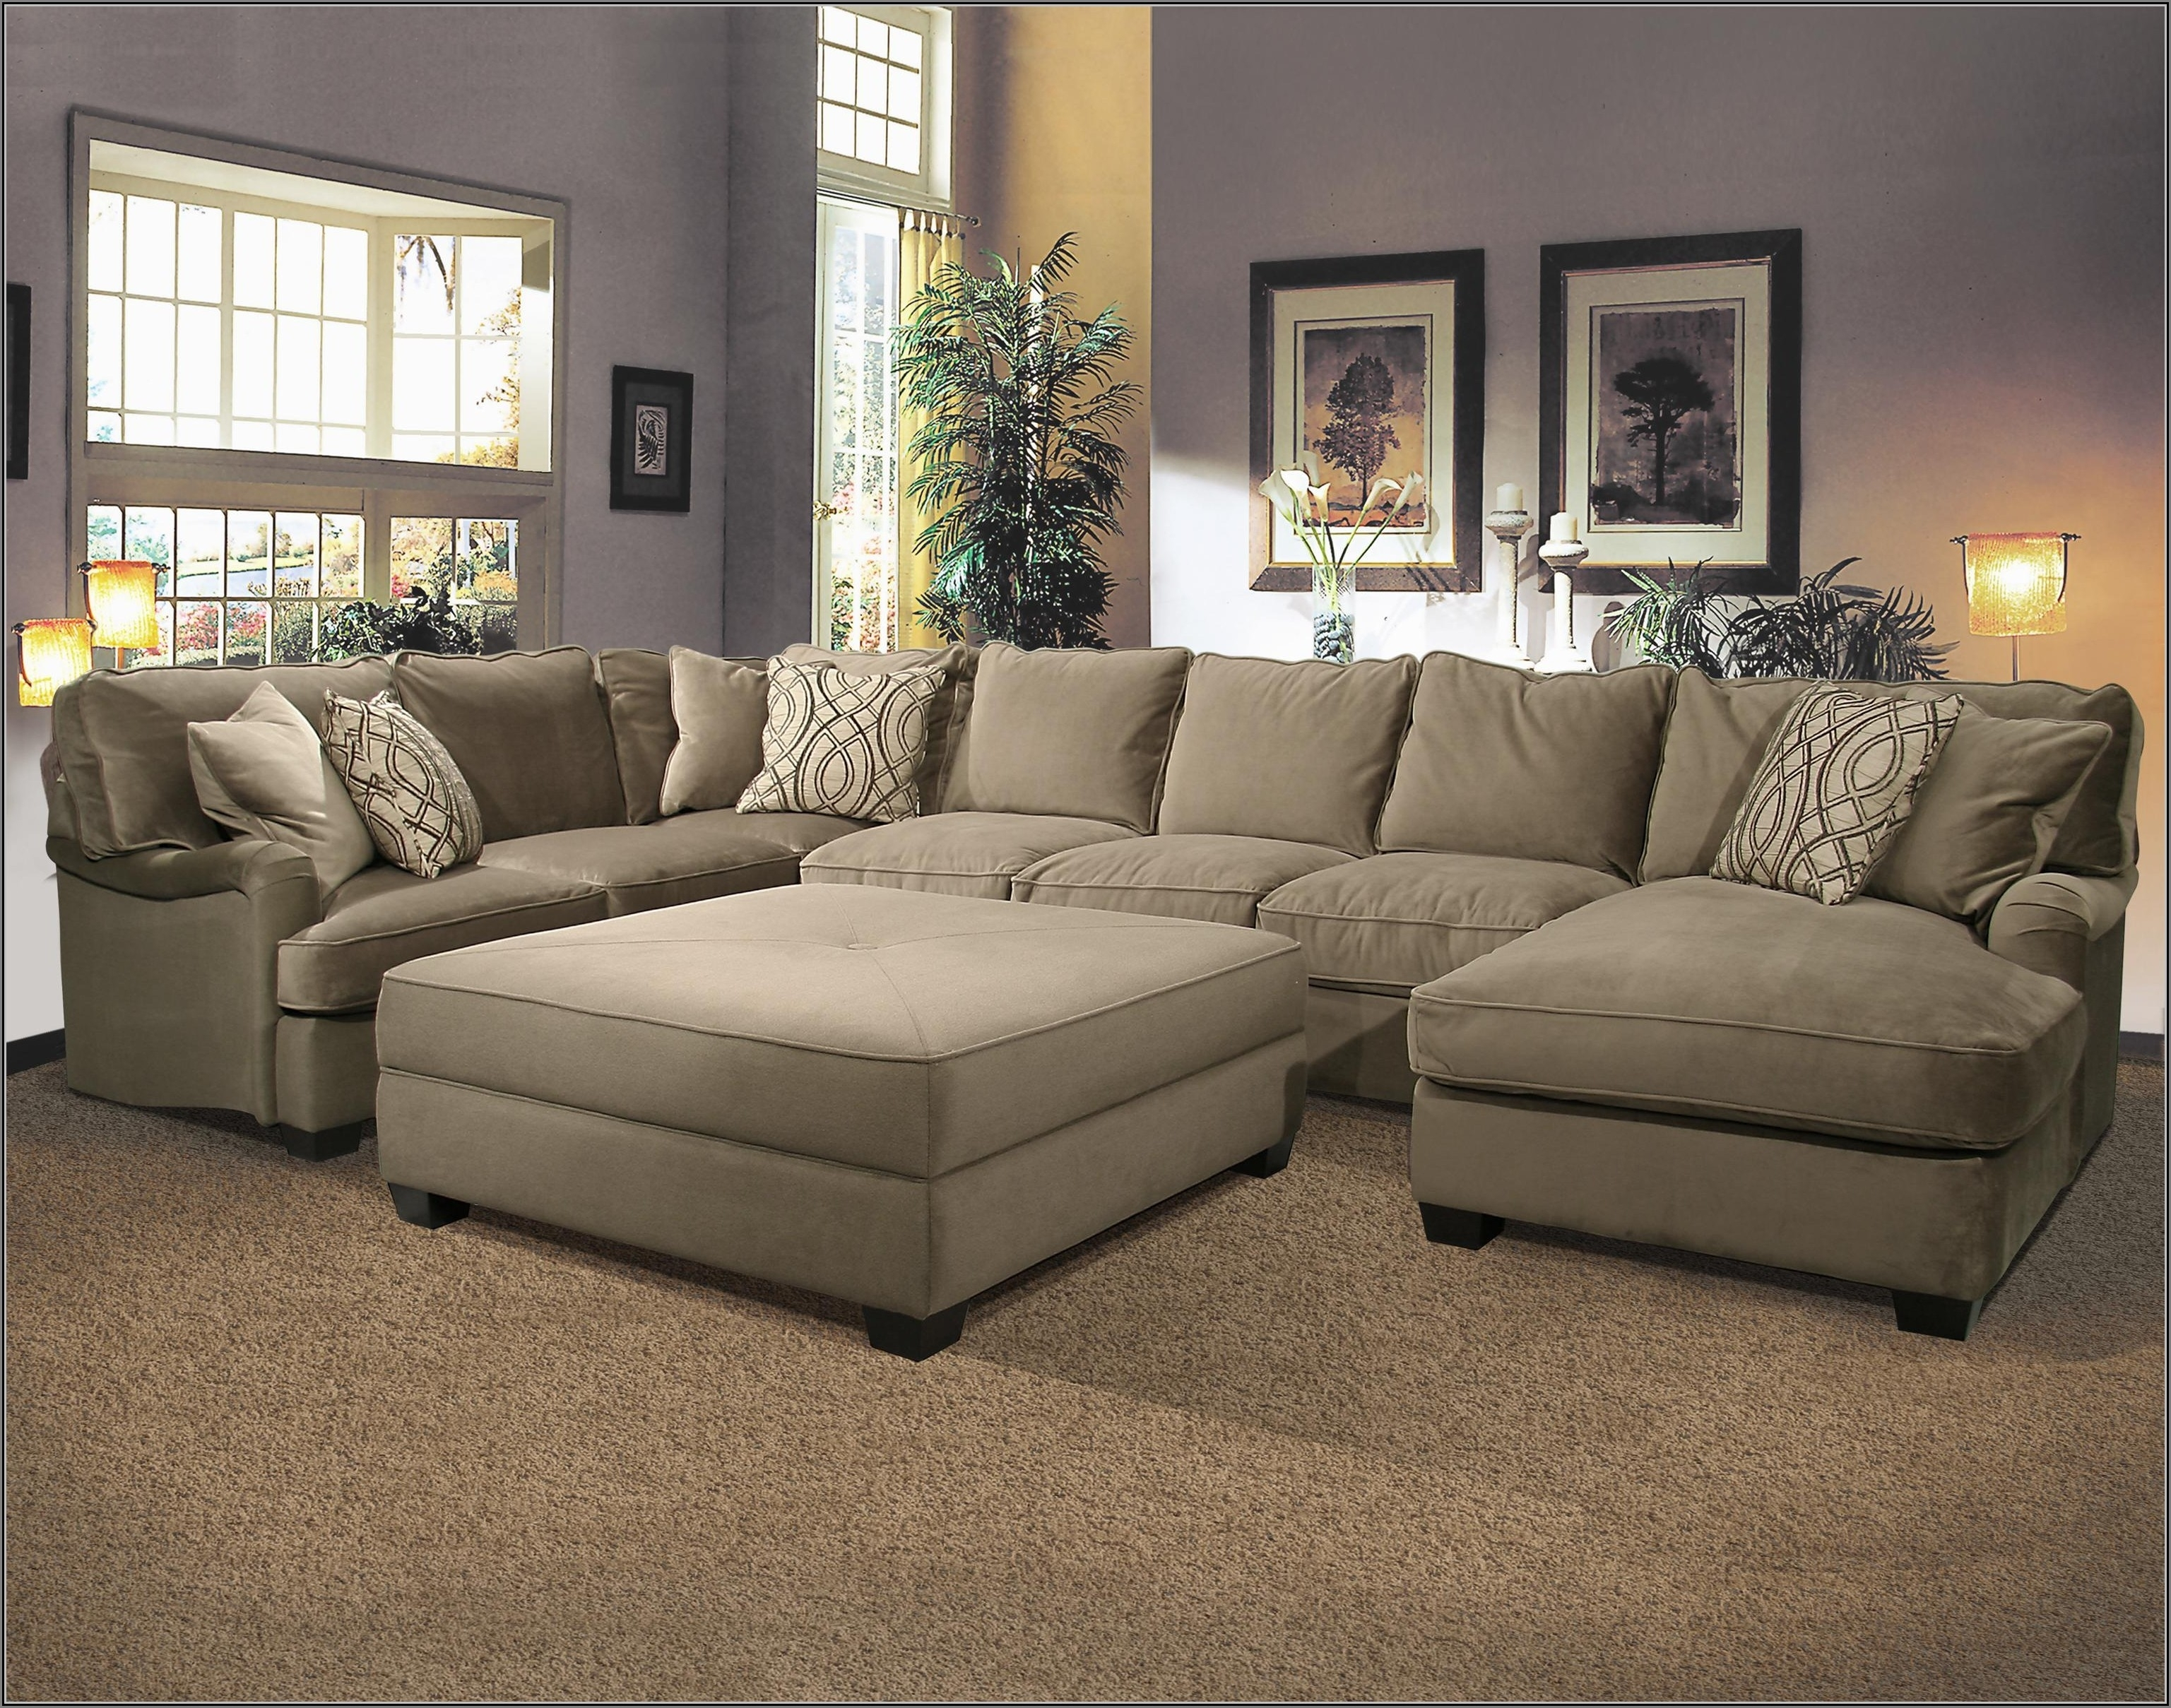 Sectional Sofath Oversized Ottoman Chenille Fabric Matching Regarding Sectionals With Oversized Ottoman (View 3 of 15)